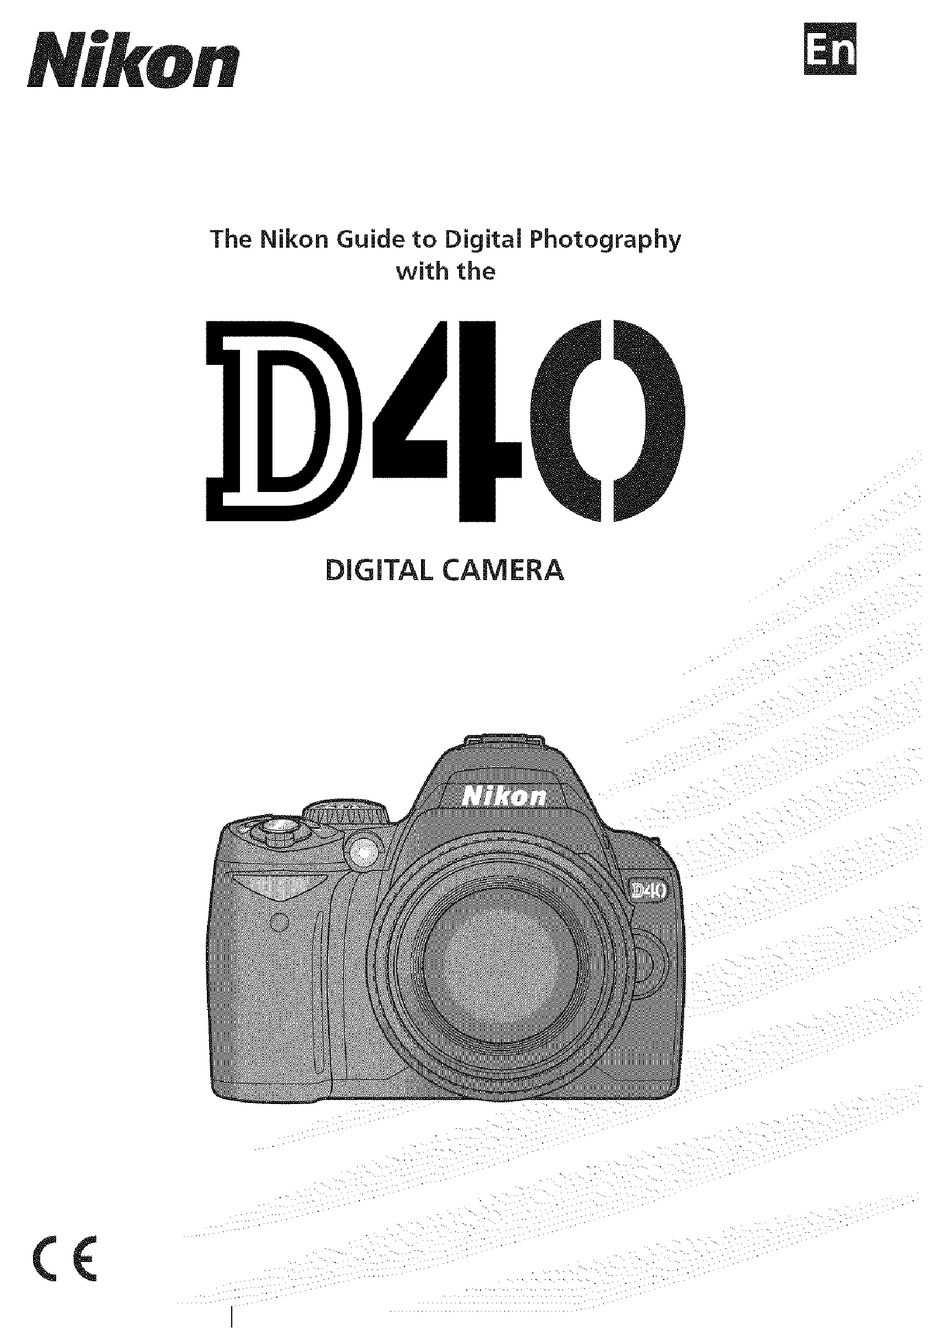 nikon d40 guide user manual pdf download | manualslib  manualslib